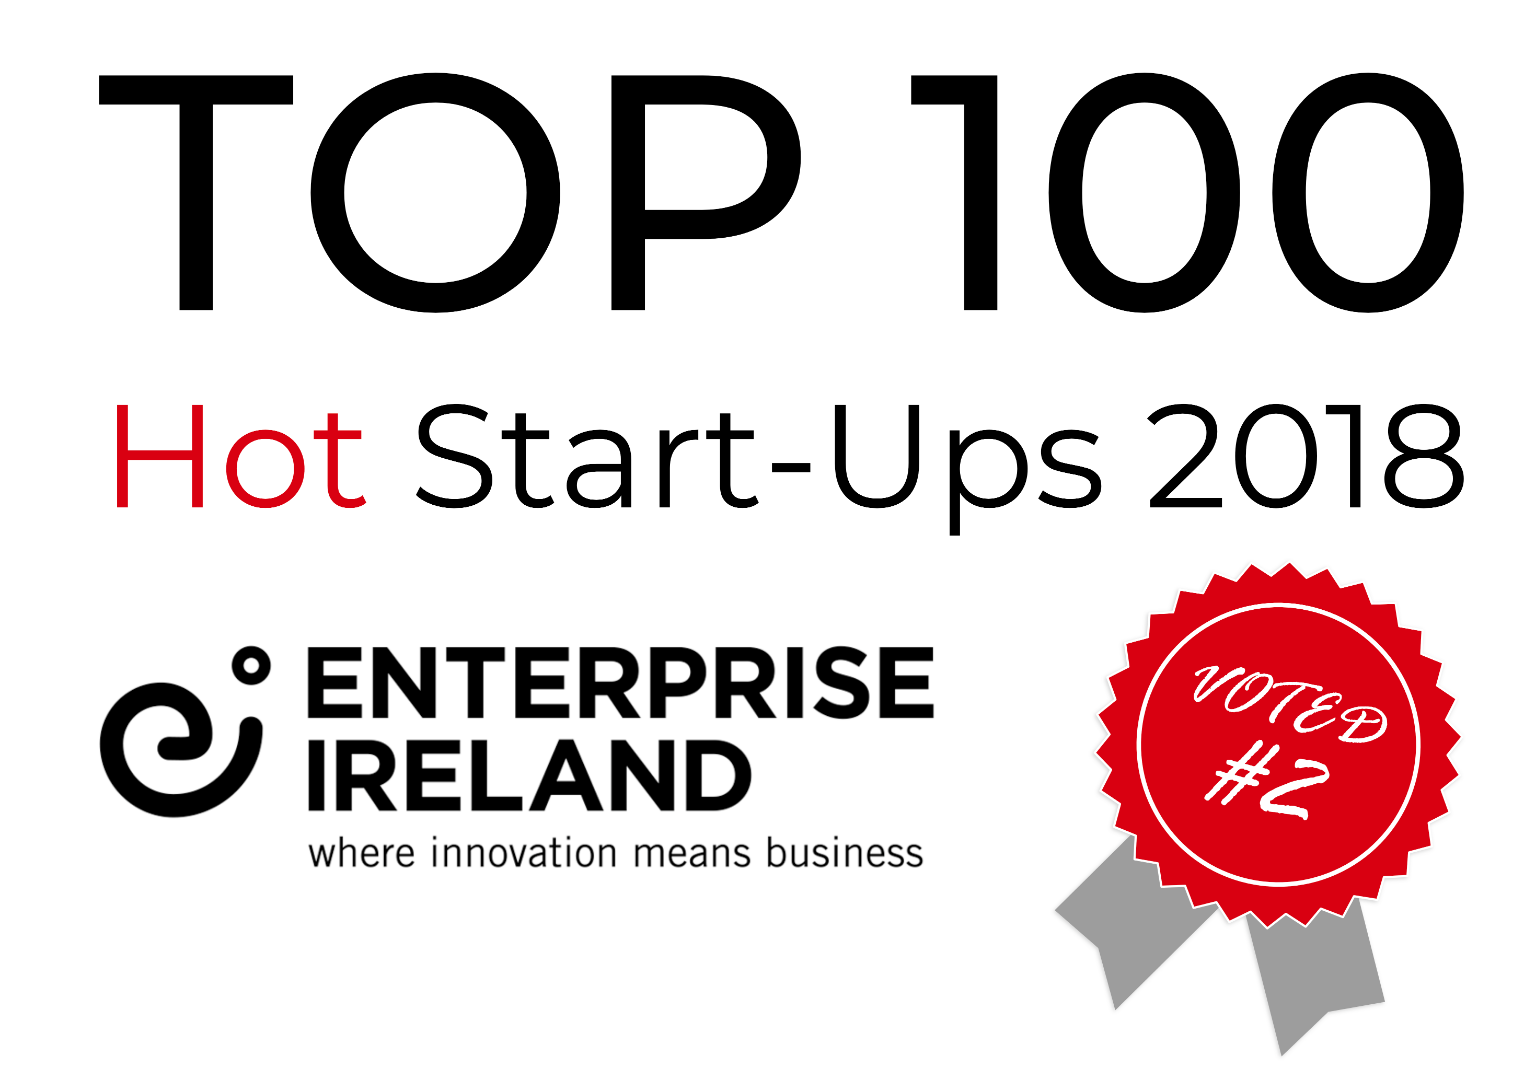 H2Olabcheck voted #2 in top 100 hot start ups in Ireland